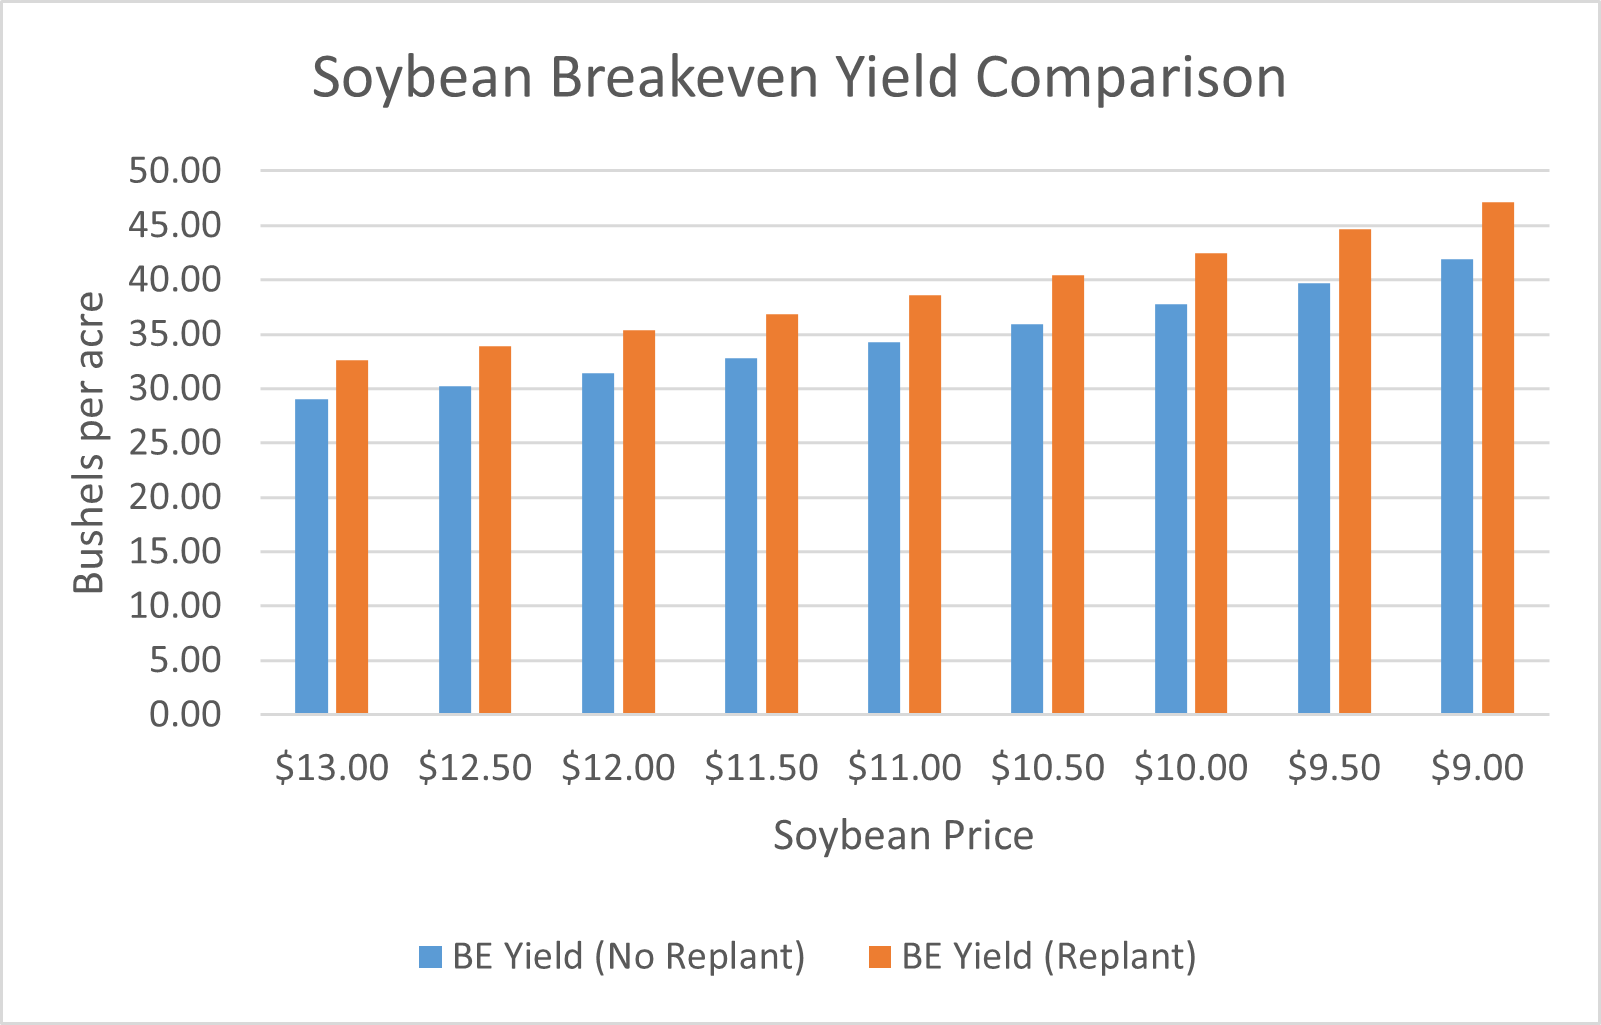 soybean breakeven yield comparison